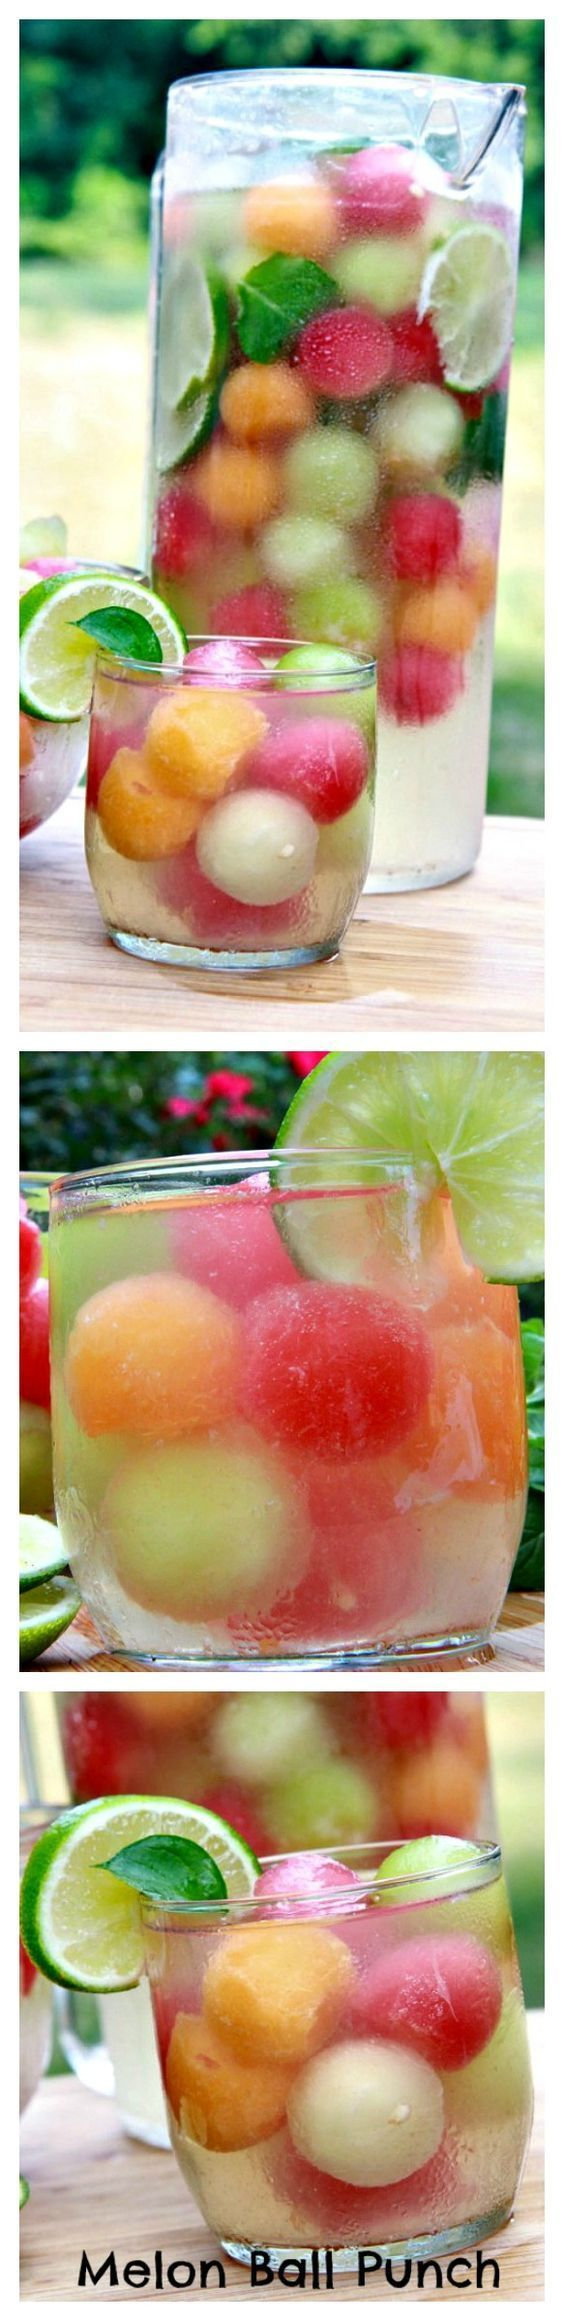 Refreshing Melon Ball Punch! This stuff is what summertime is made of! Fizzy, lightly sweetened and full of melon flavor!